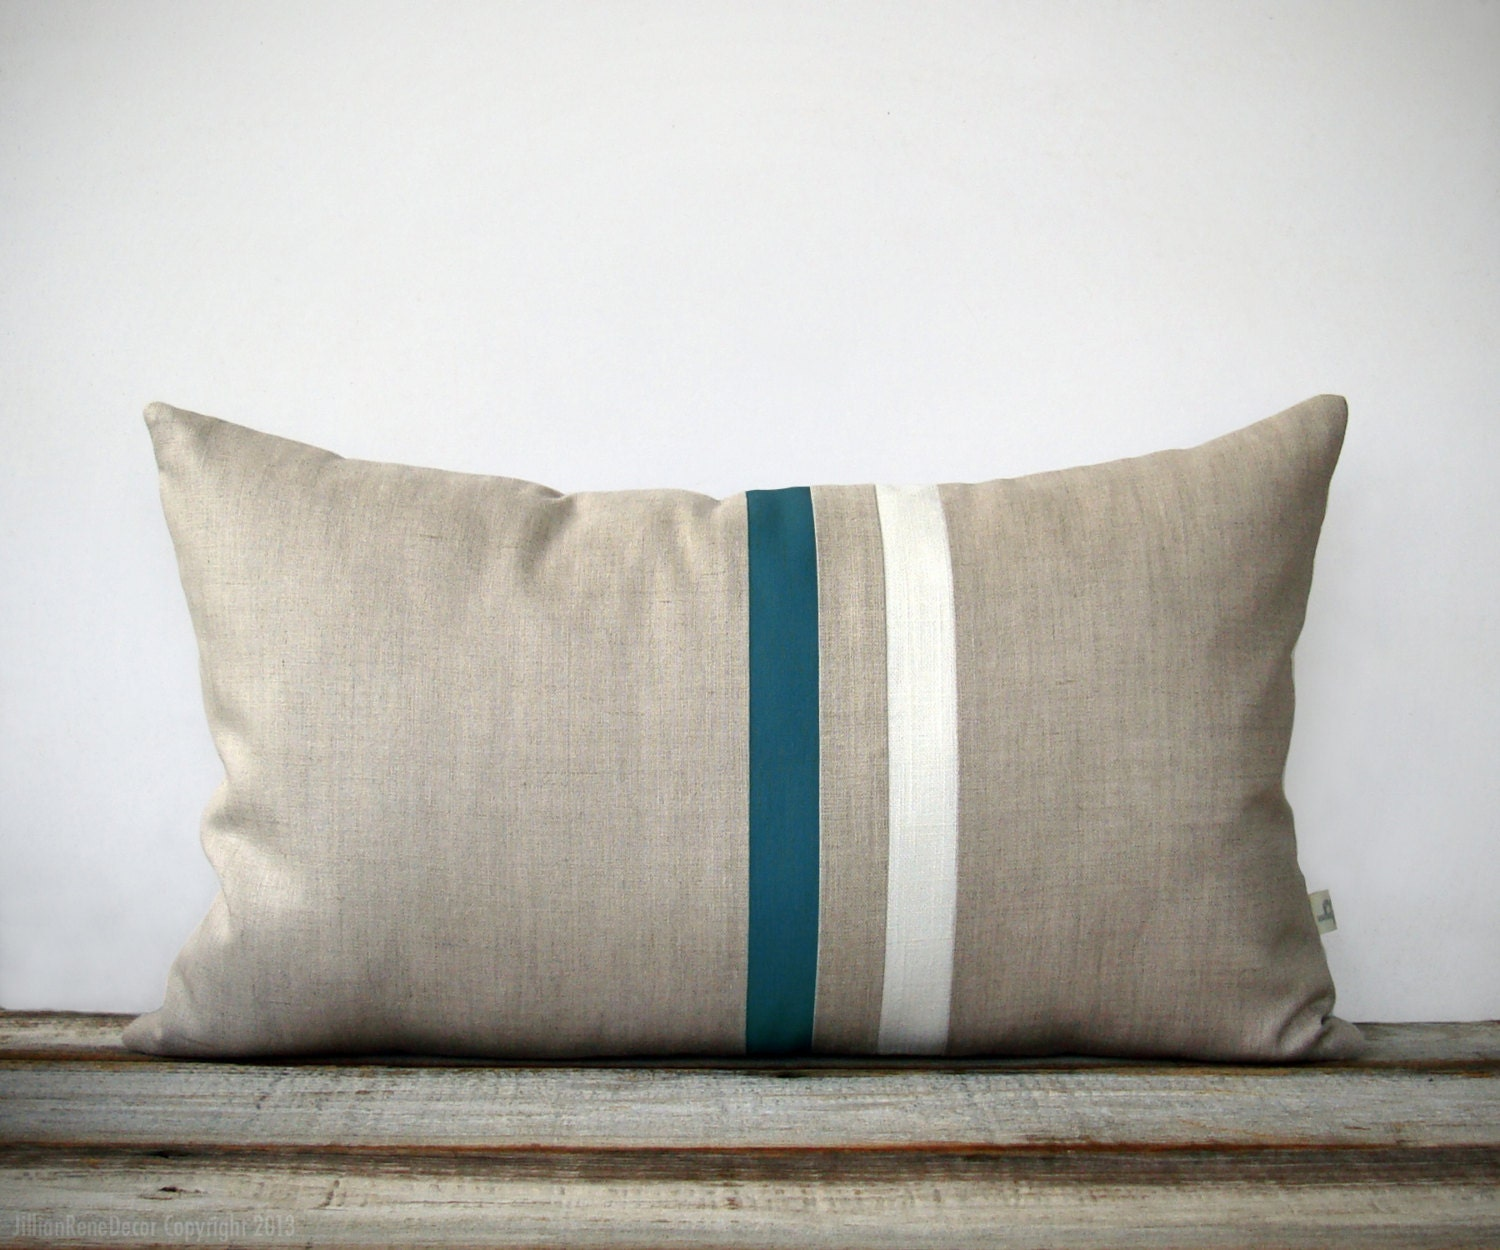 Teal and Cream Striped Lumbar Pillow 12x20 Modern Home Decor